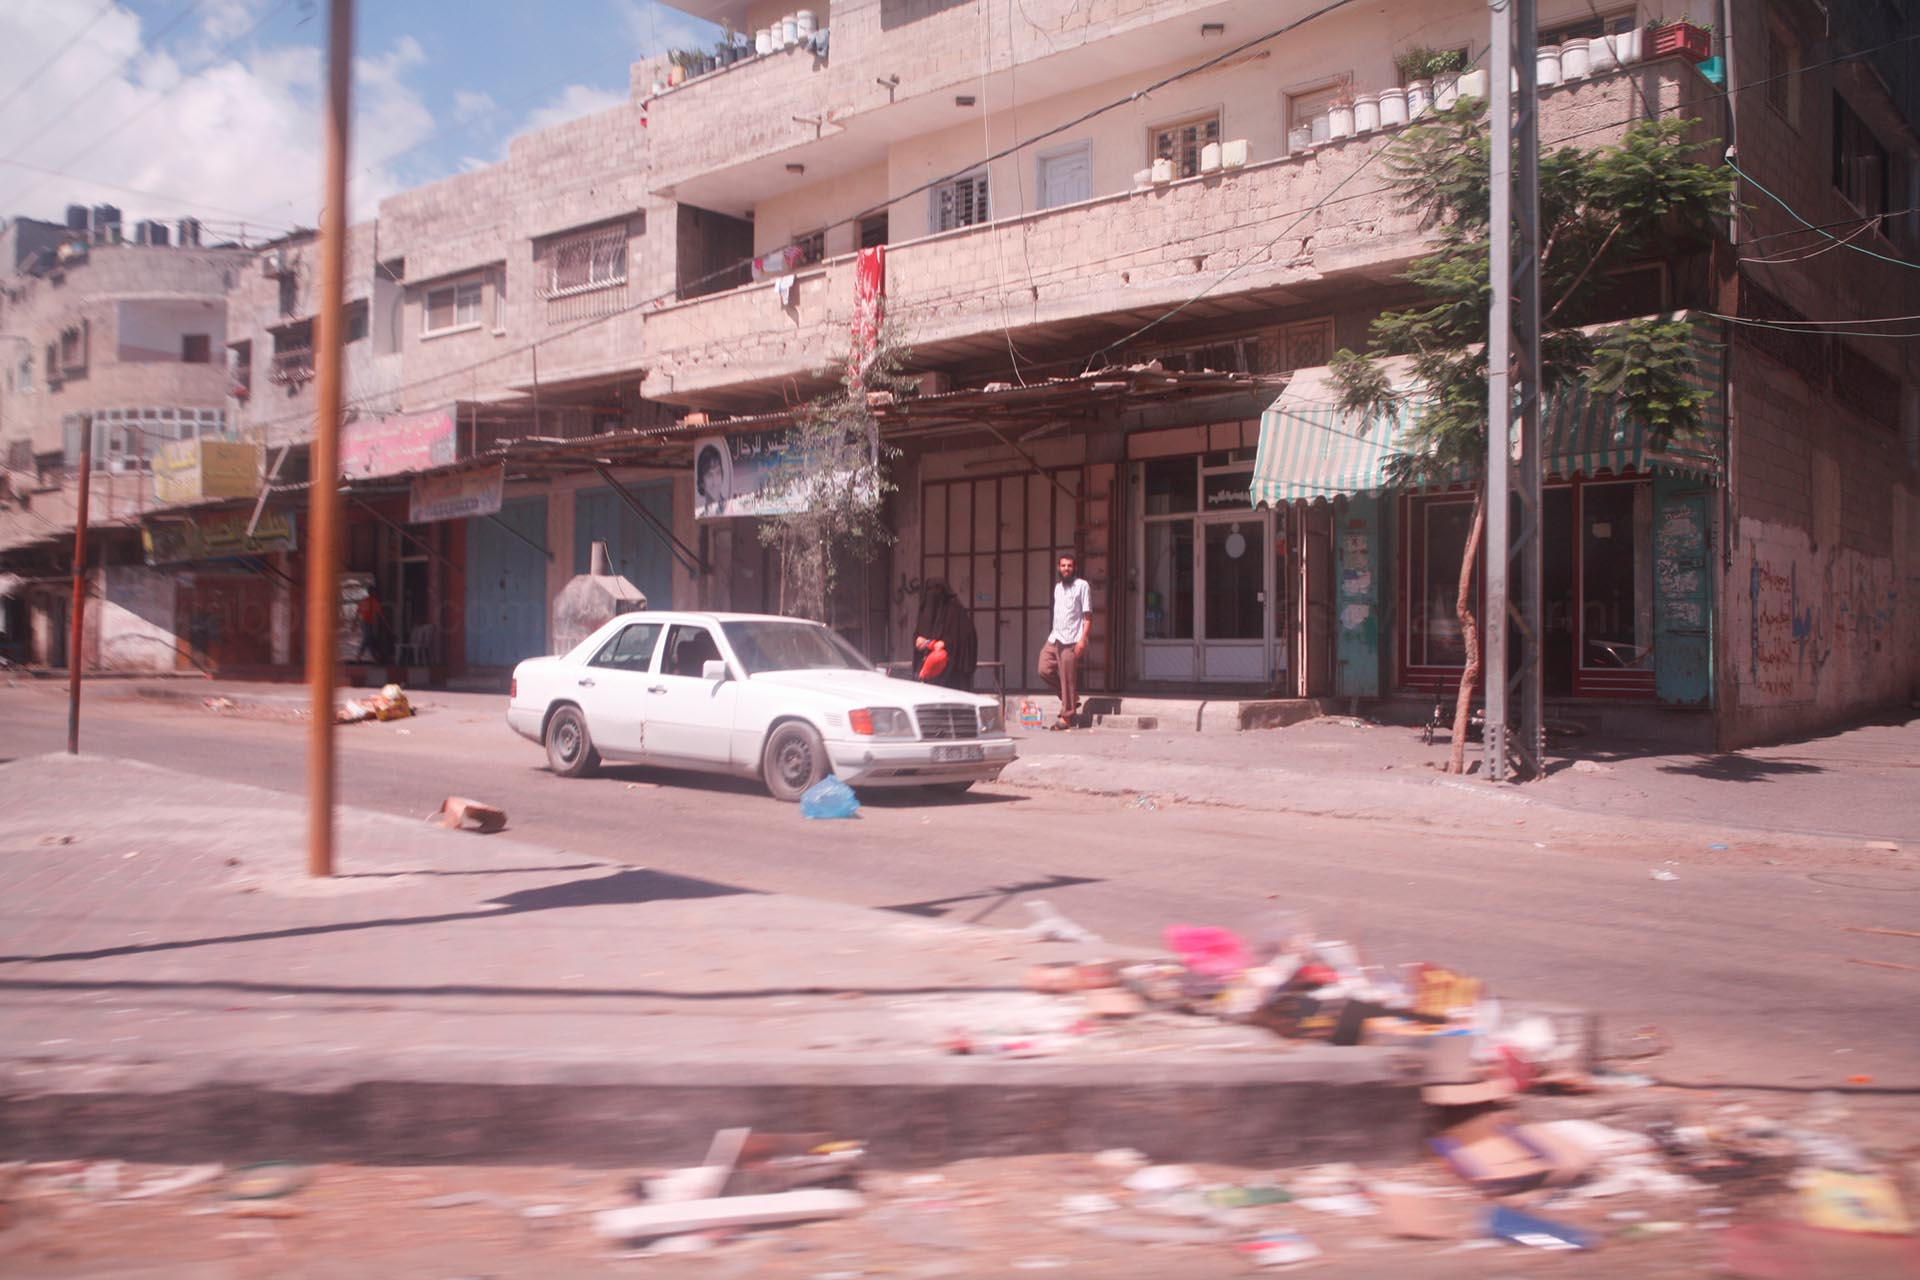 Gaza city, July 2014